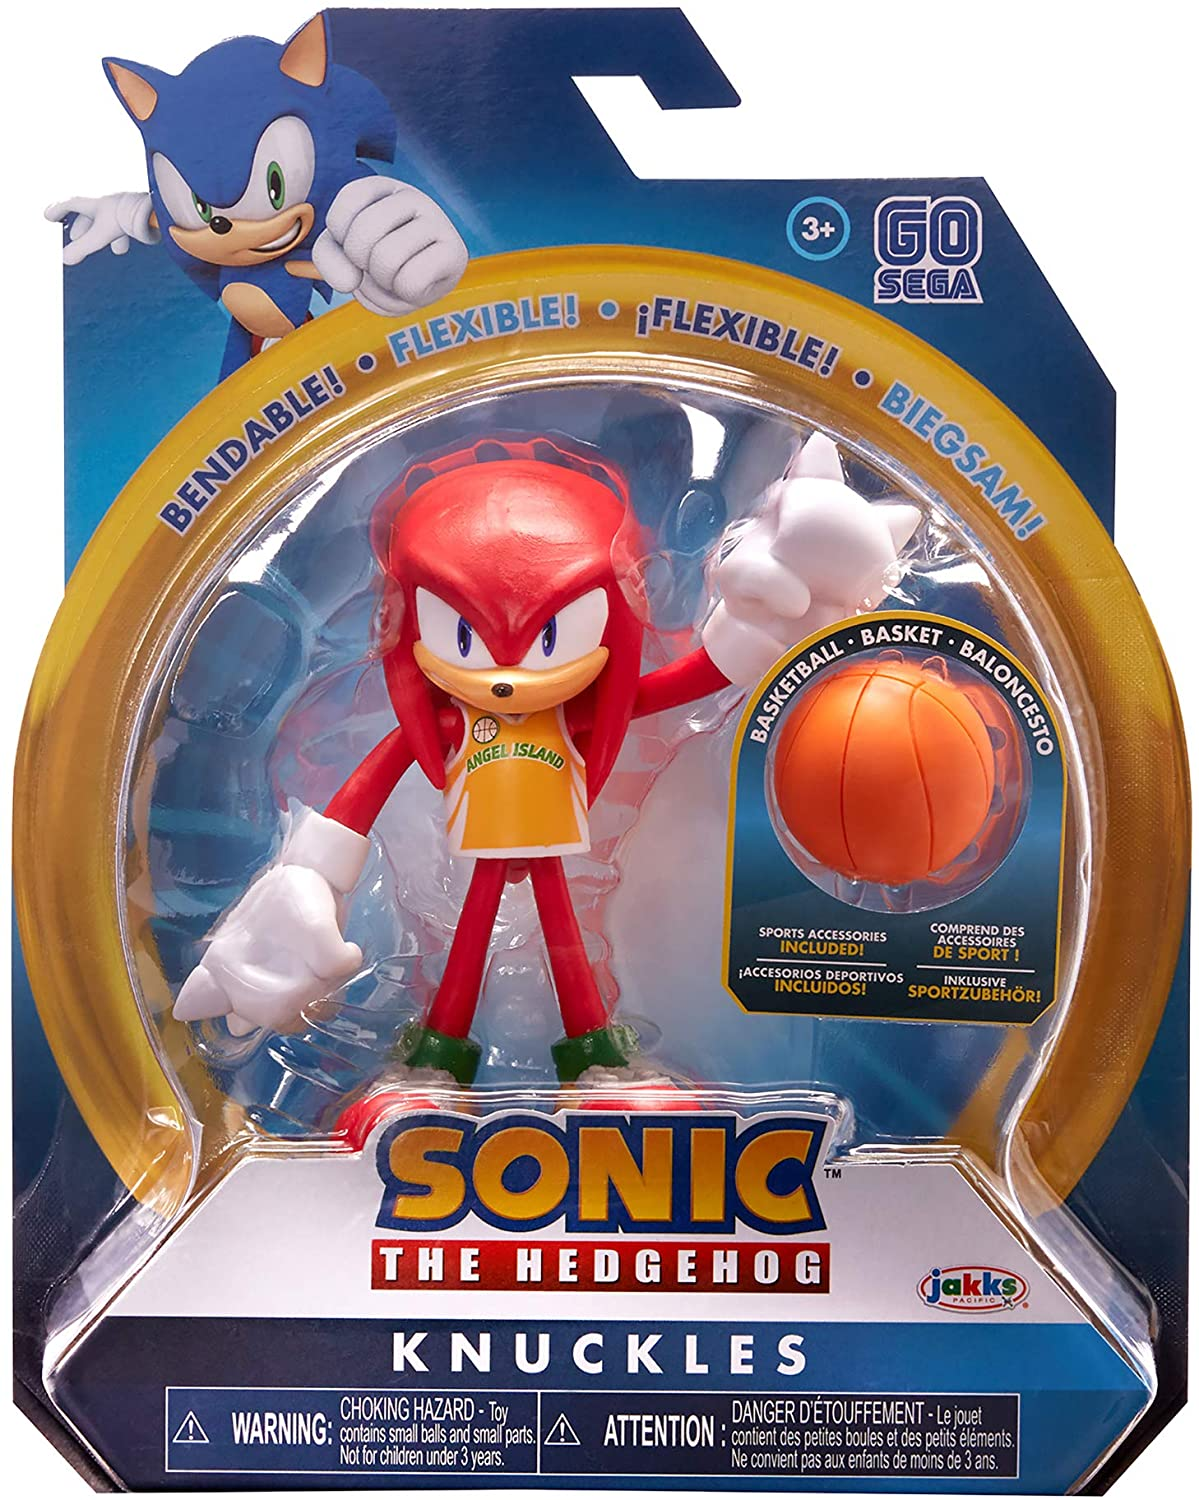 Sonic The Hedgehog 4 Basketball Knuckles Action Figure